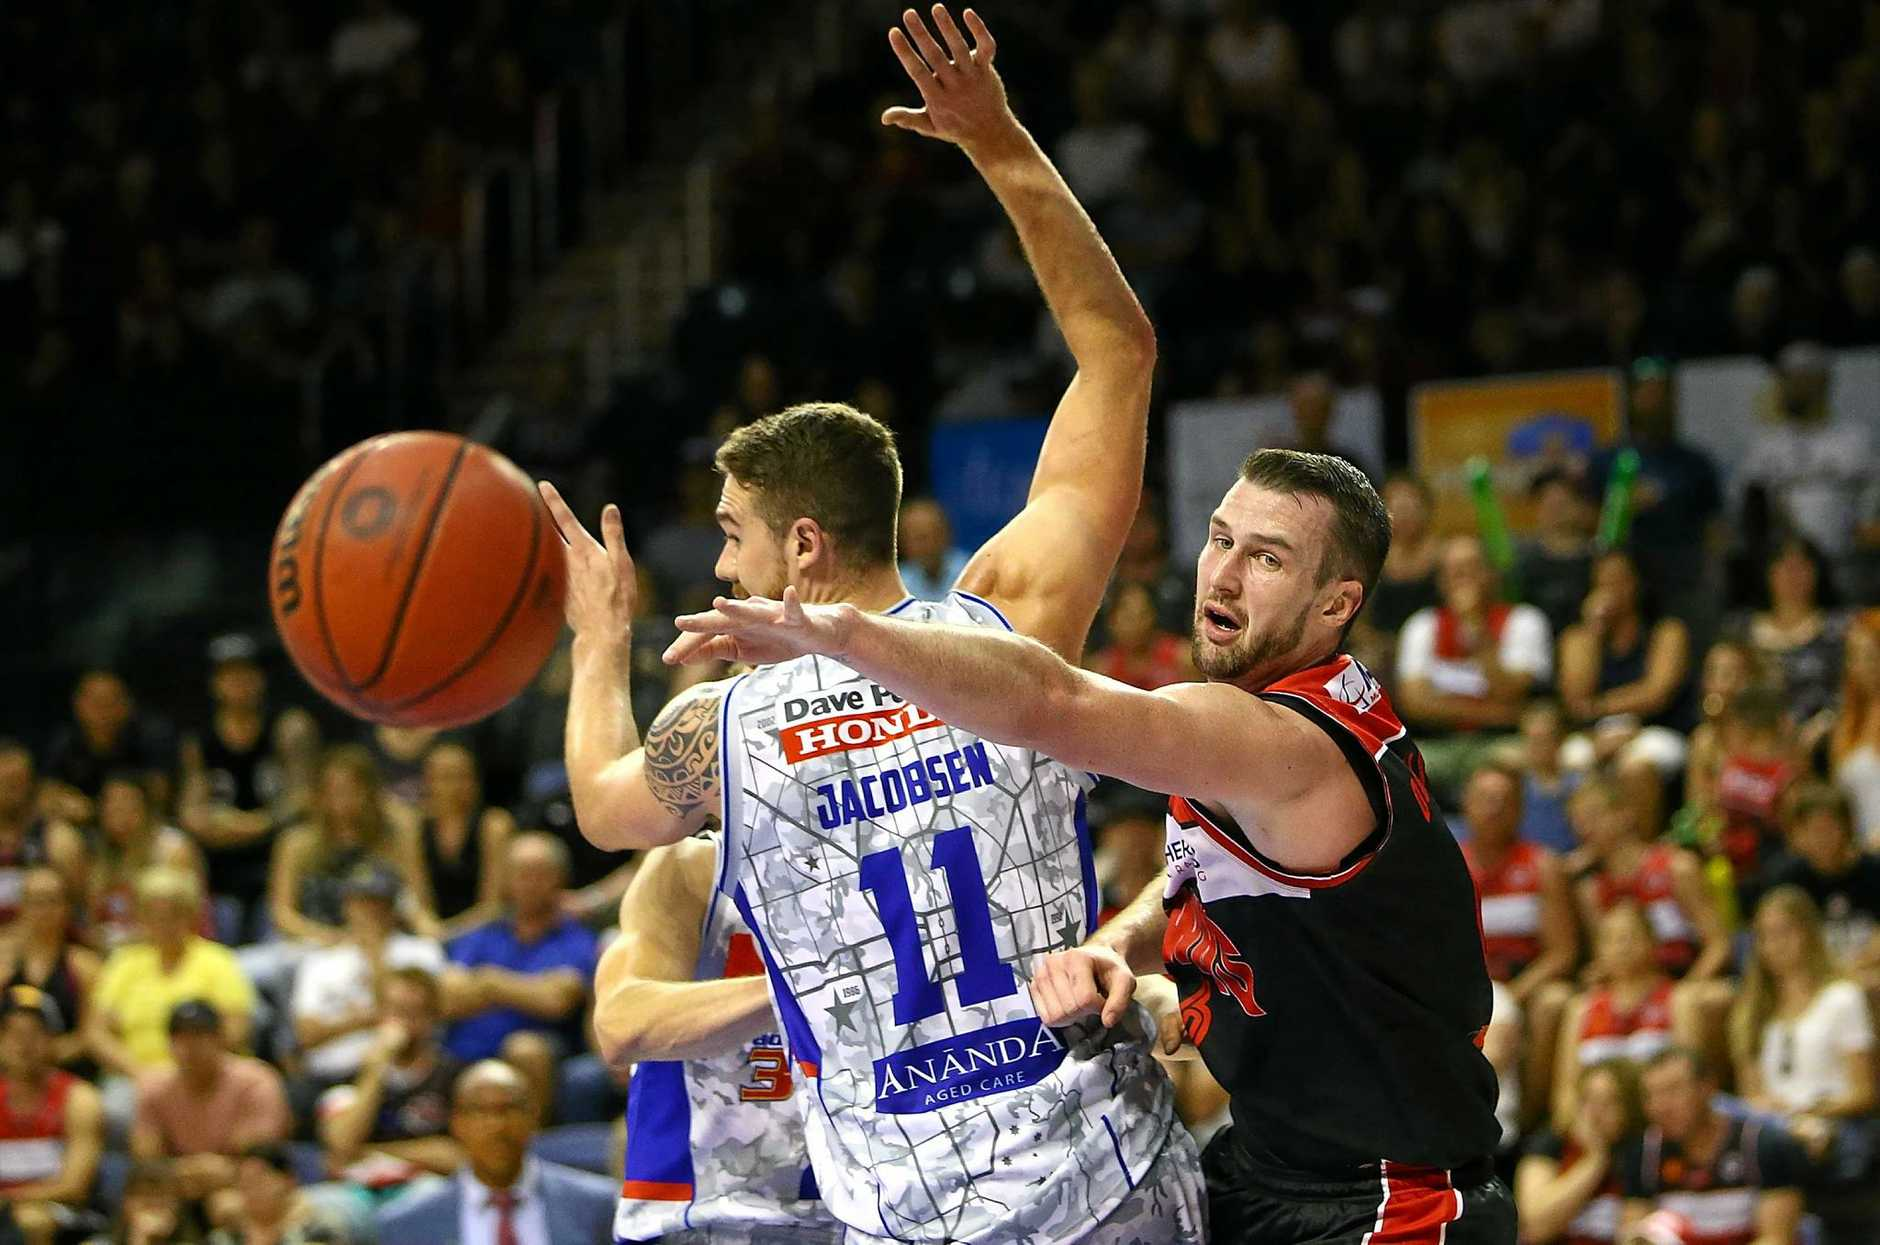 WOLLONGONG, AUSTRALIA - FEBRUARY 19:  Andrew Ogilvy of the Hawks passes during the second NBL Semi Final match between Illawarra Hawks and the Adelaide 36ers at WIN Entertainment Centre on February 19, 2017 in Wollongong, Australia.  (Photo by Mark Nolan/Getty Images)